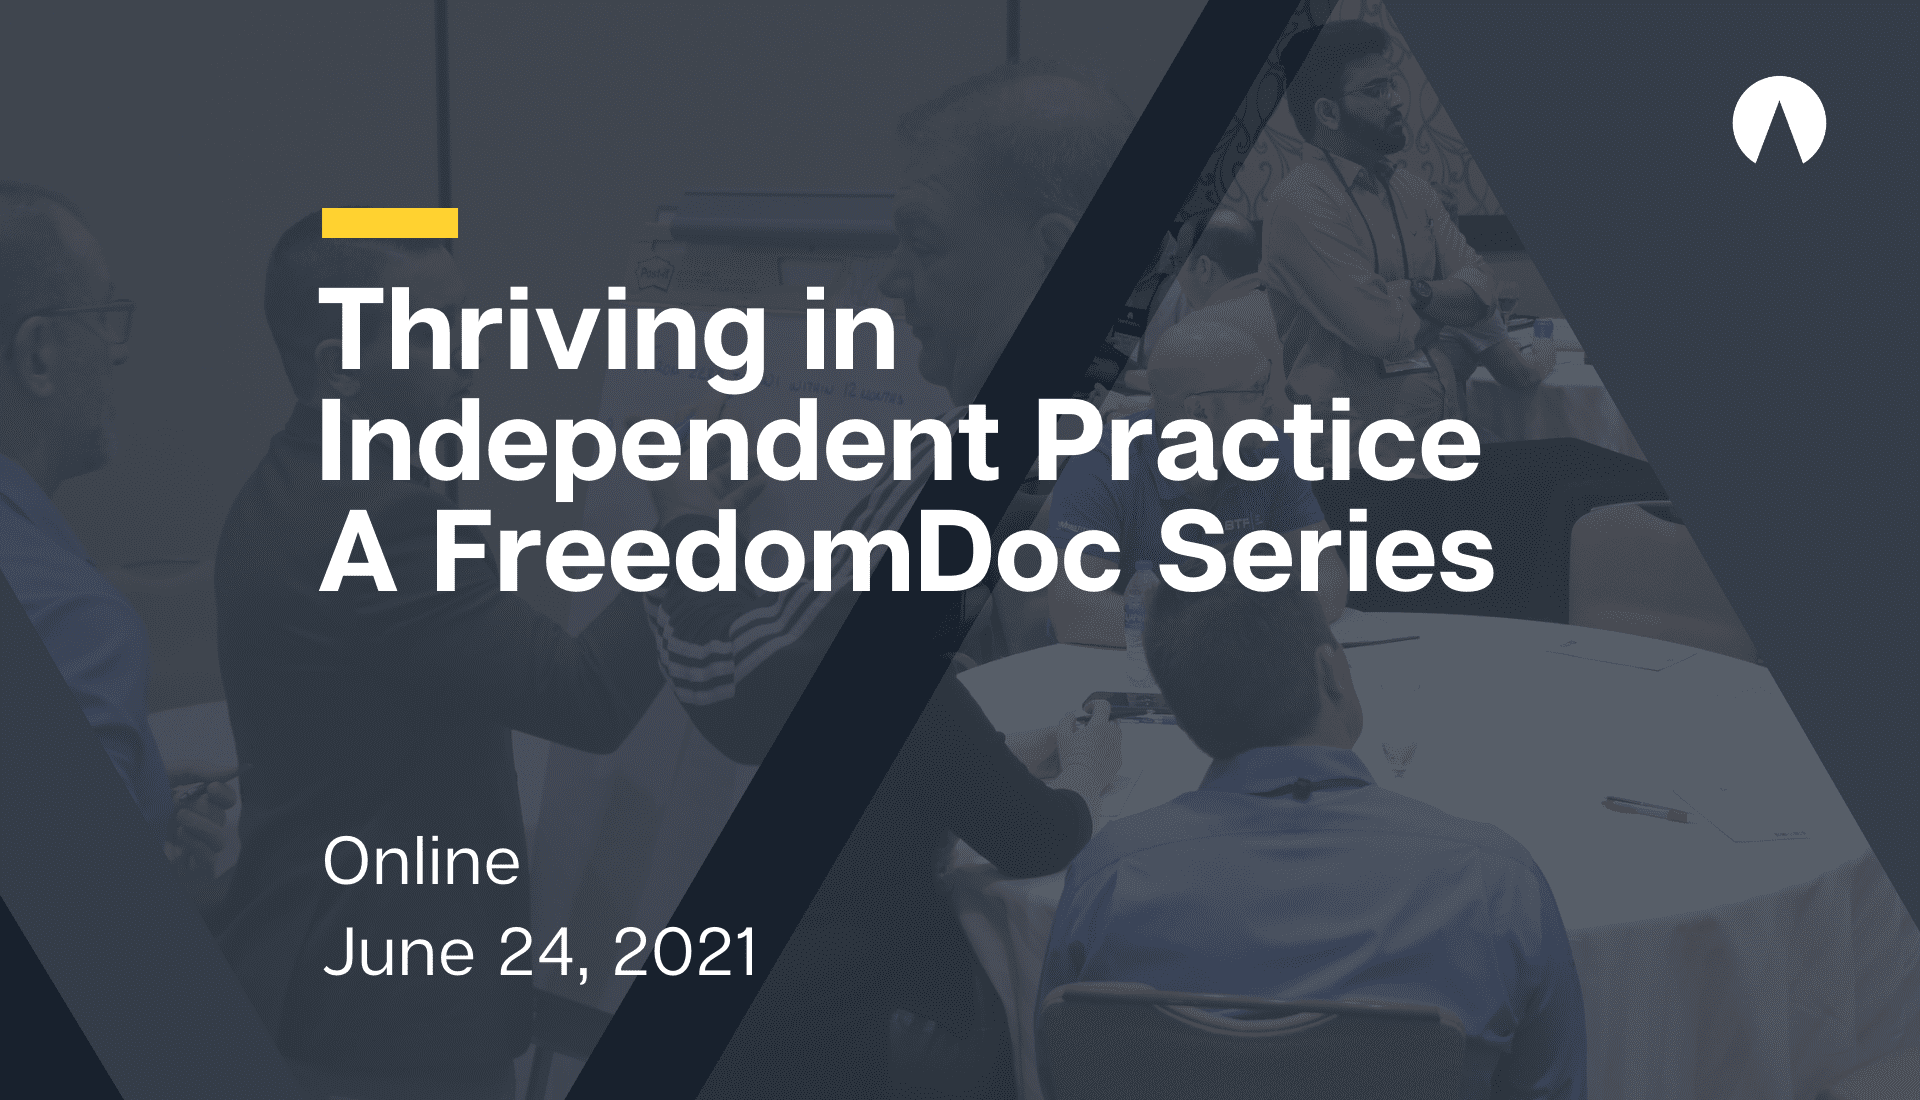 Thriving in Independent Practice